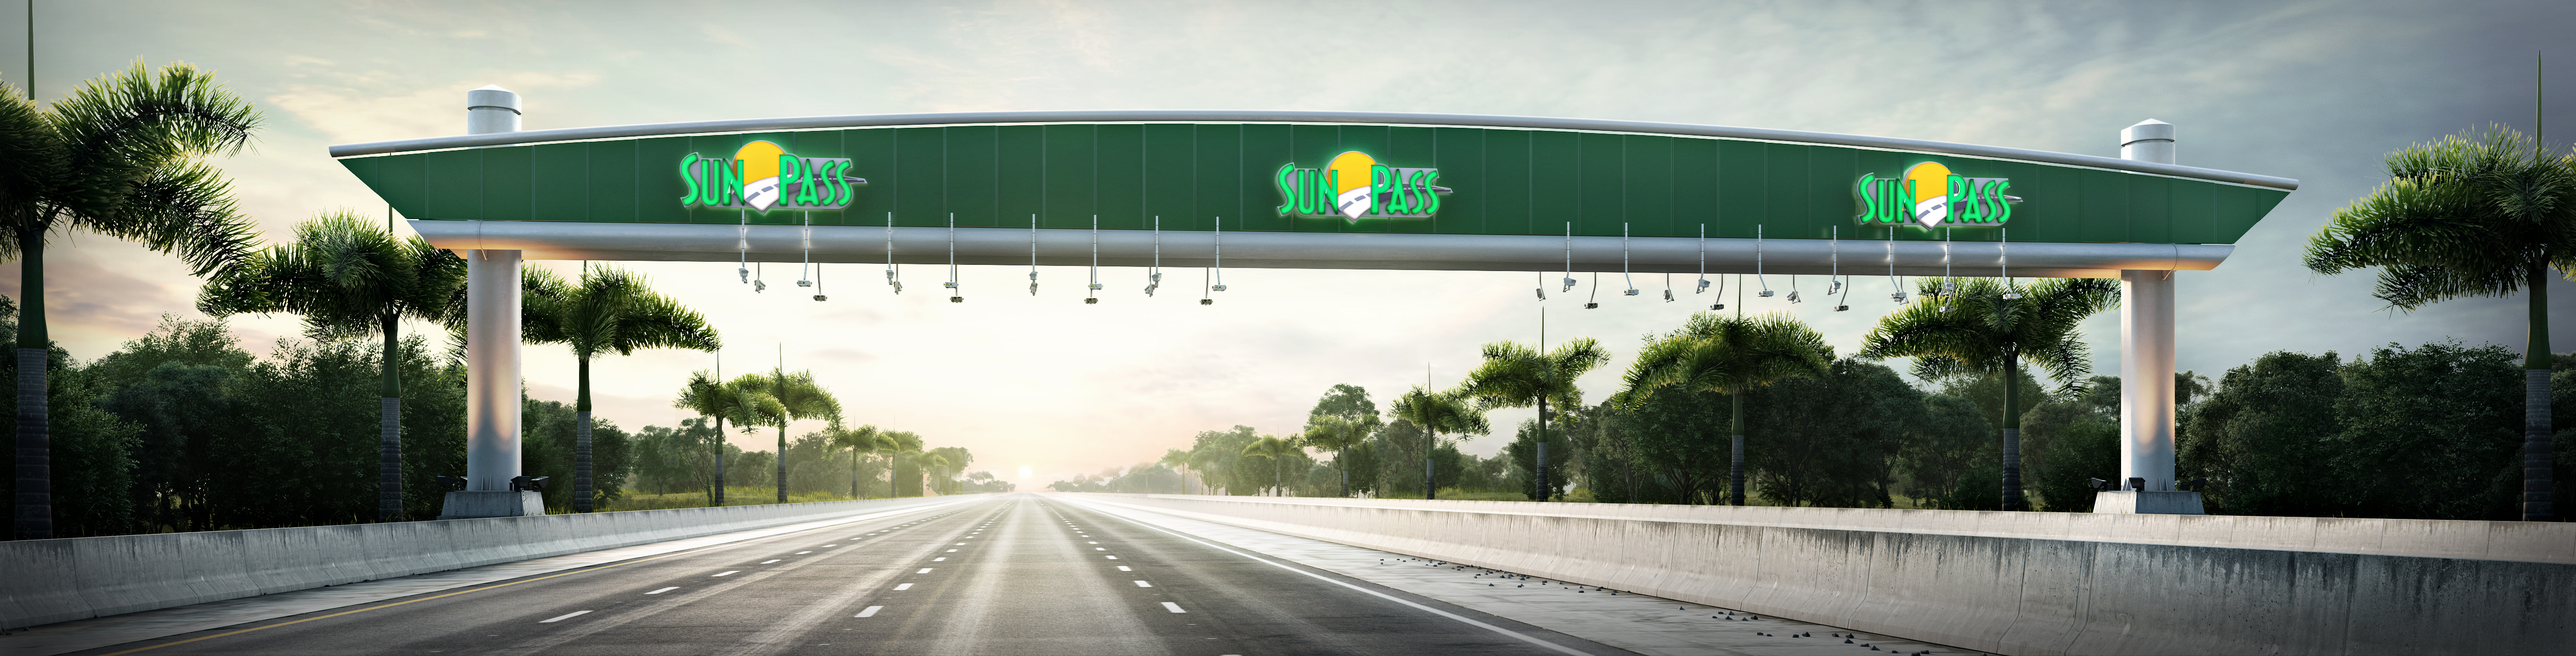 Sunpass Gantry Miami Renderings